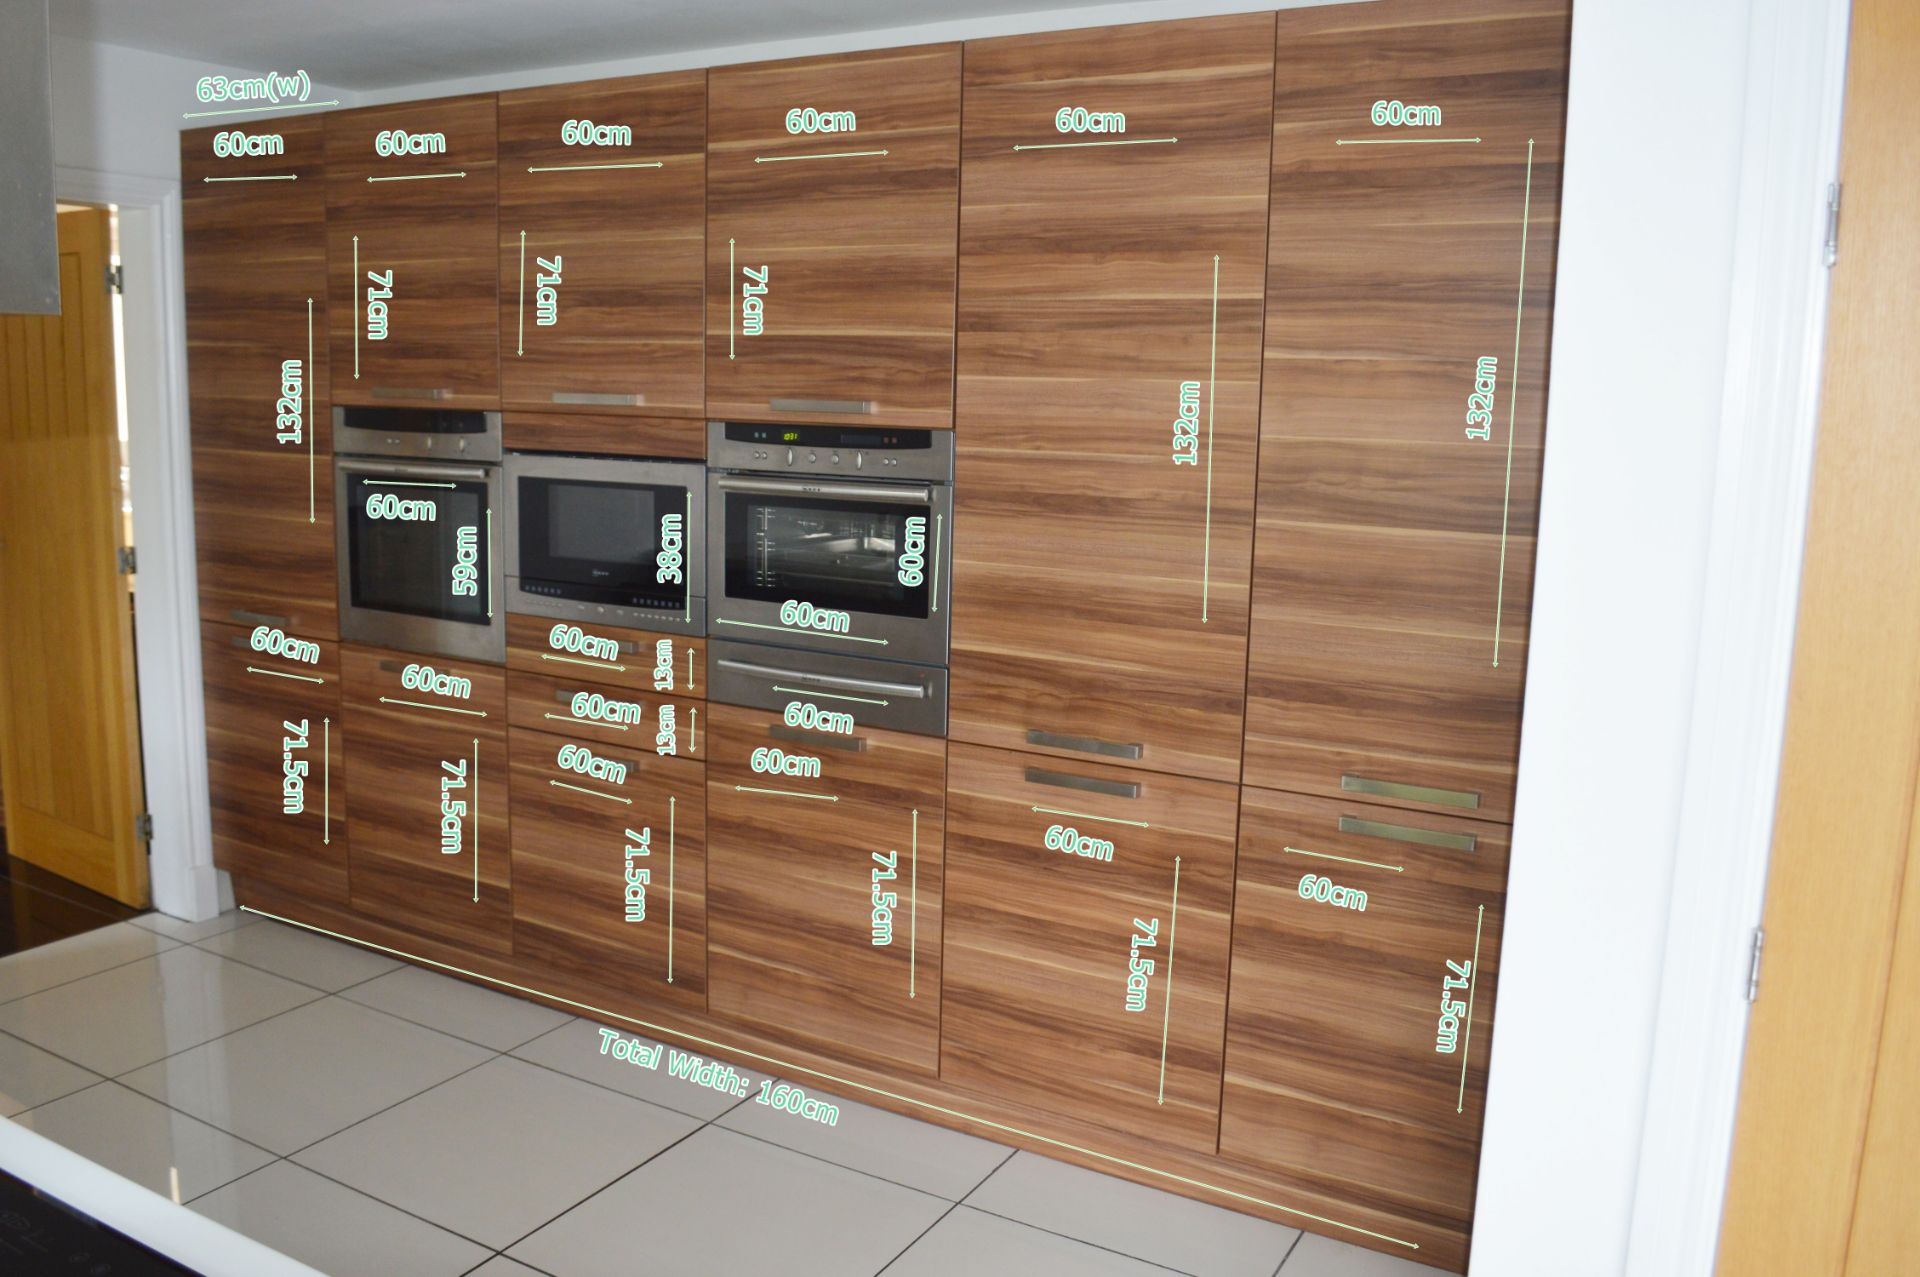 1 x Contemporary Bespoke Fitted Kitchen With Integrated Neff Branded Appliances, Quartz Worktops - Image 45 of 52